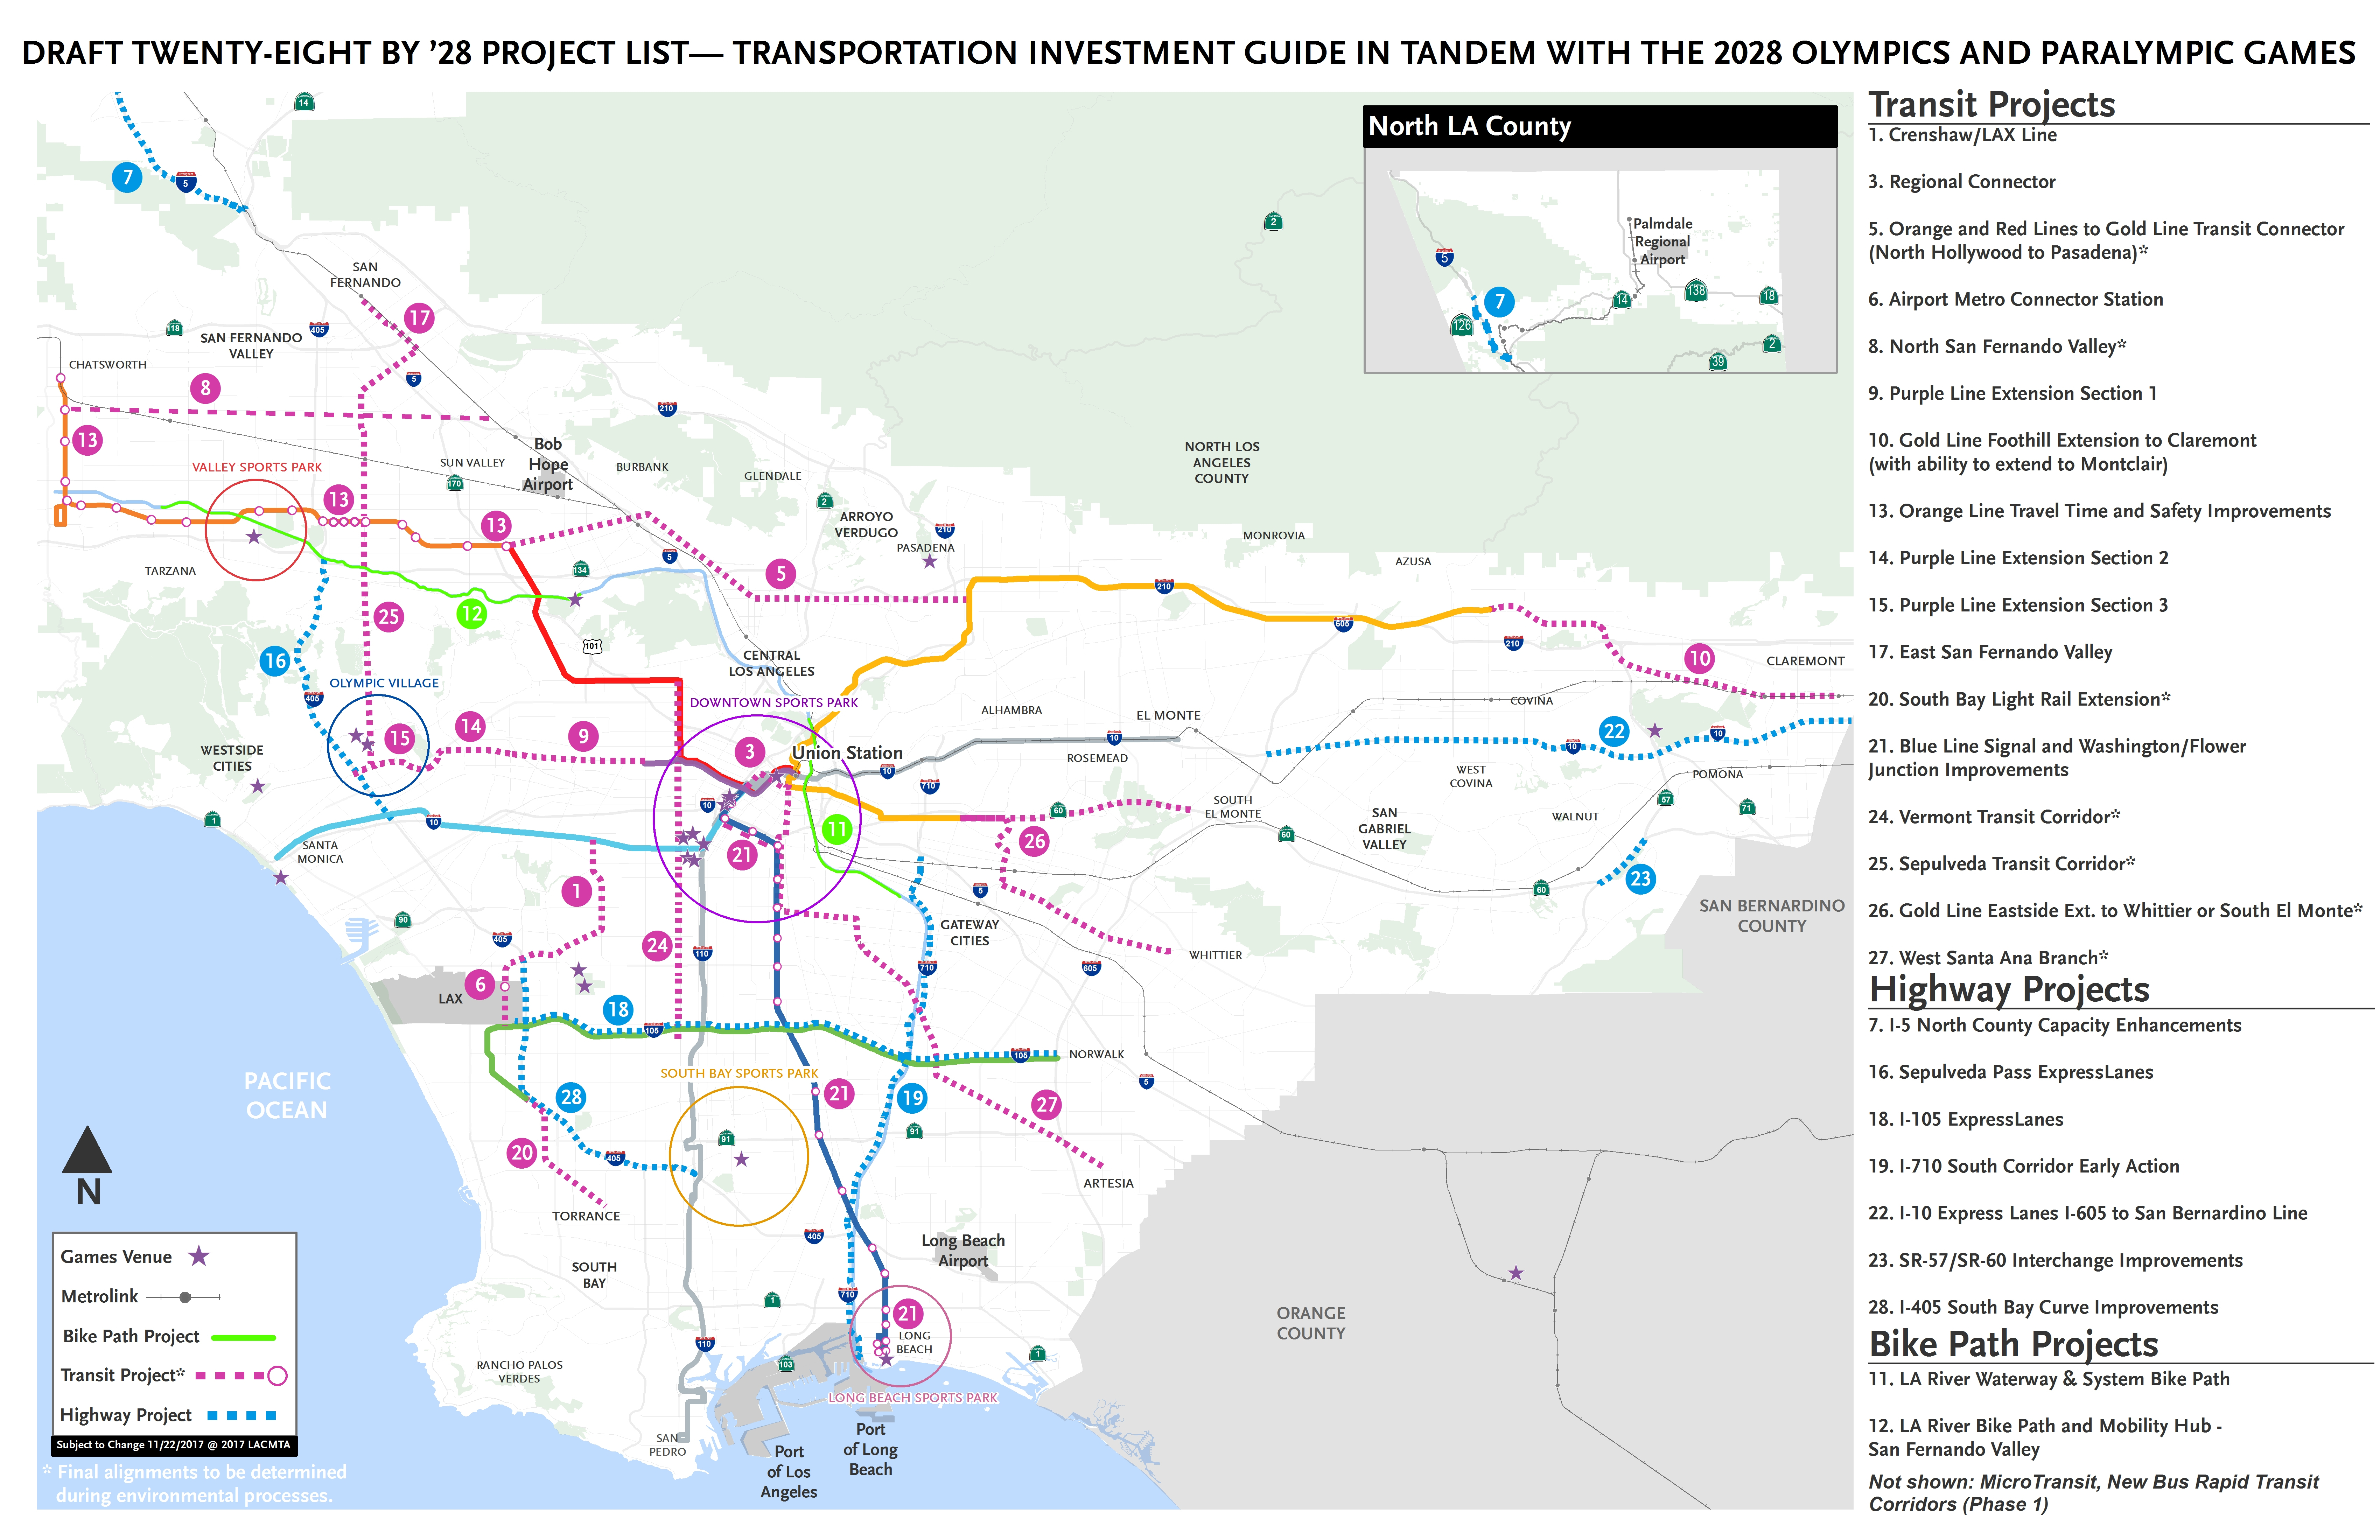 Plan Seeks To Complete 28 Transpo Projects2028 Olympics And - Southern California Metrolink Map